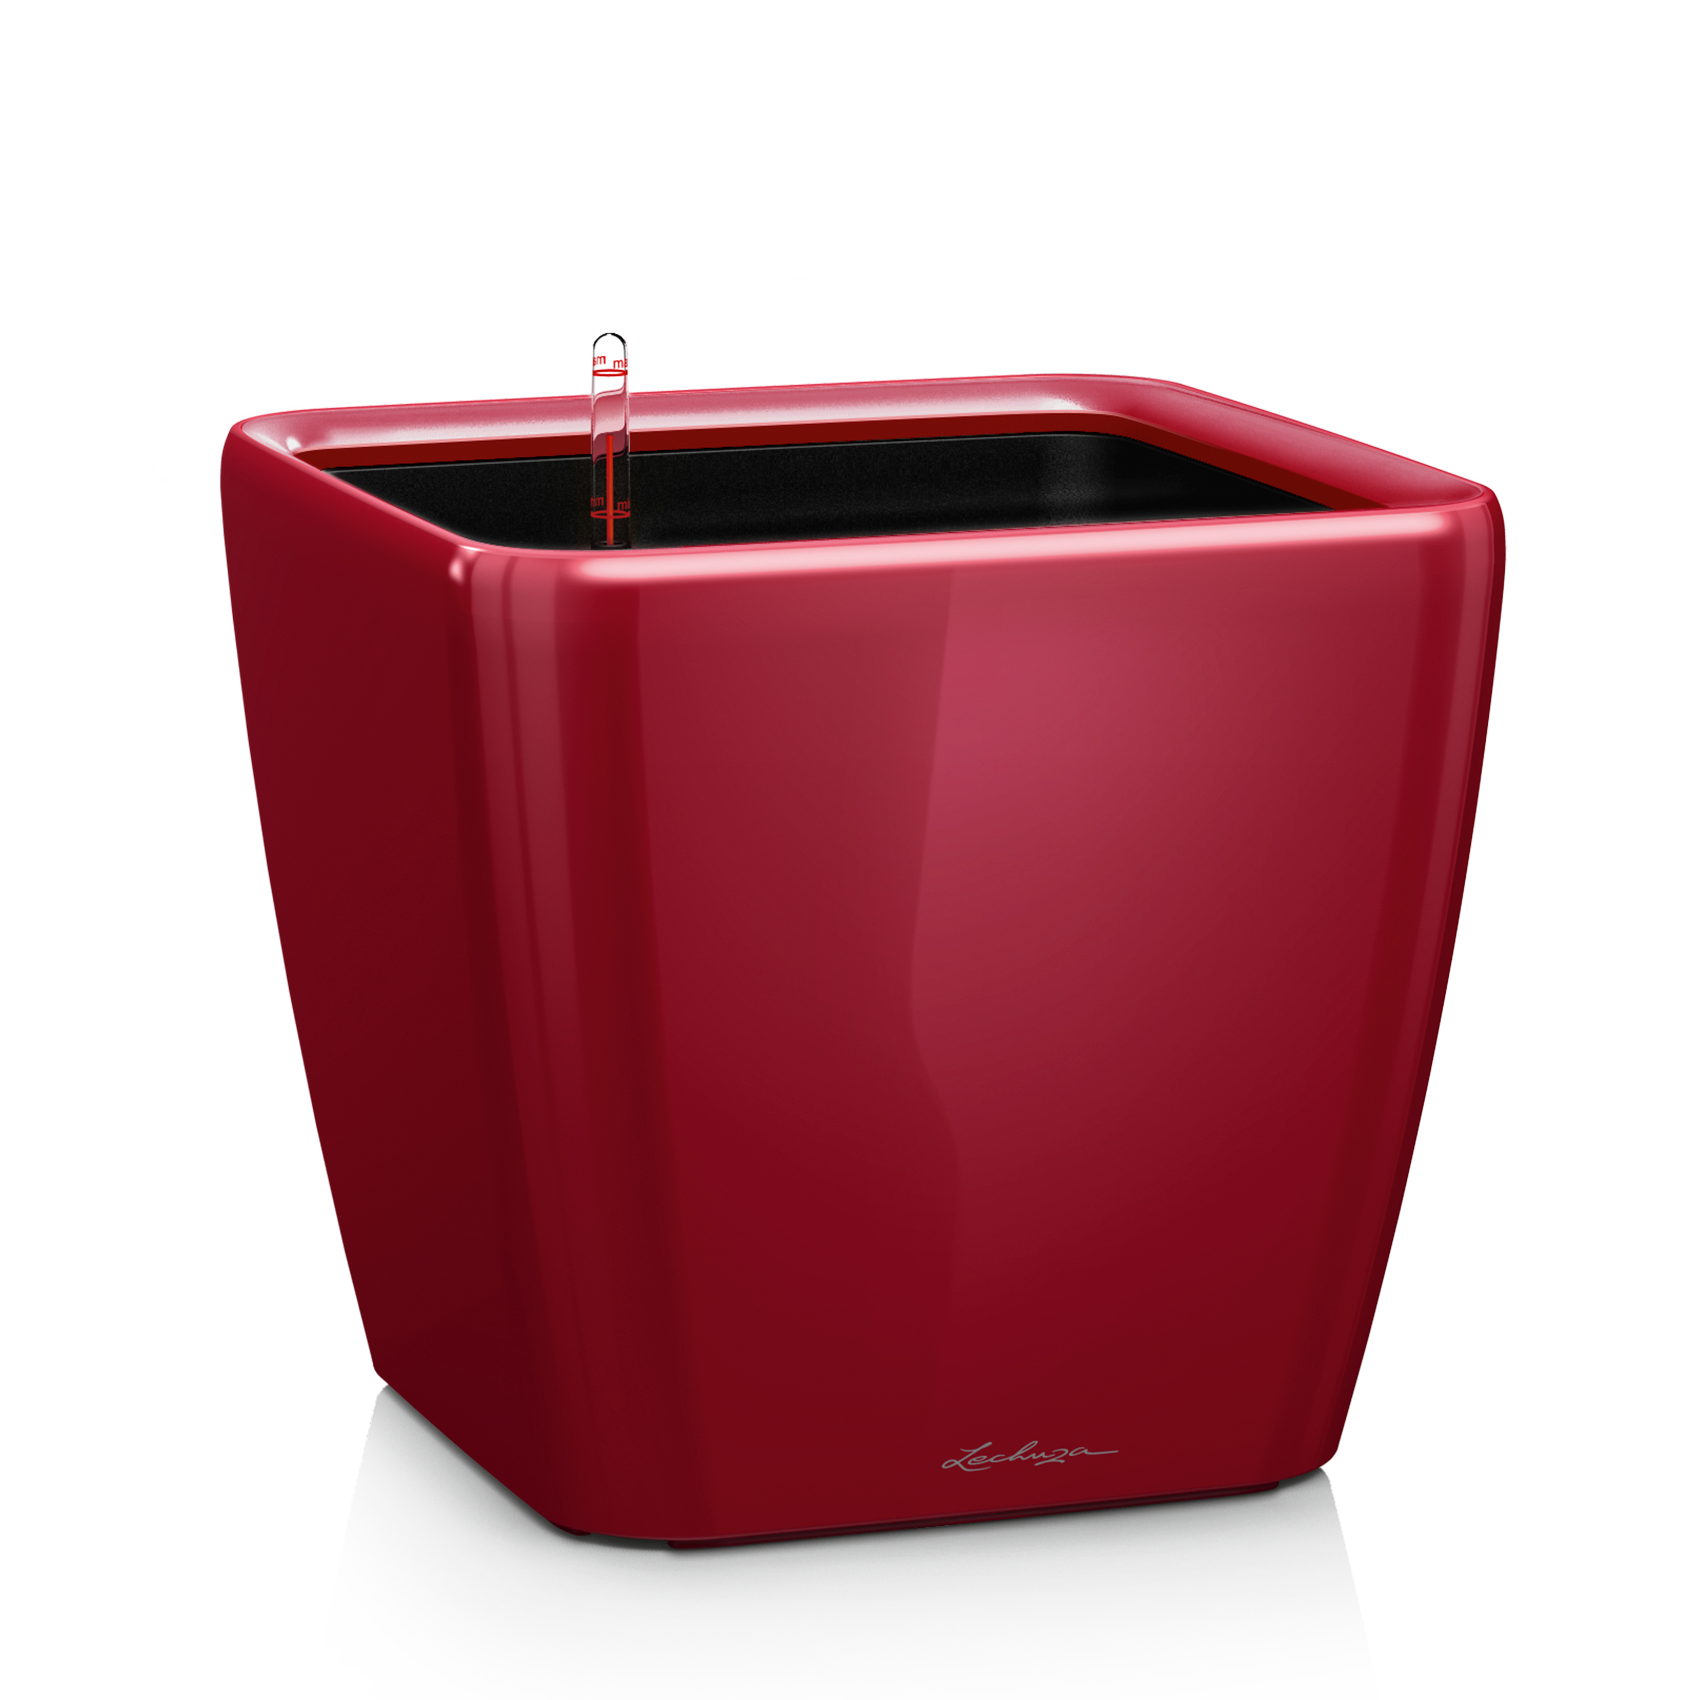 QUADRO LS 50 scarlet red high-gloss